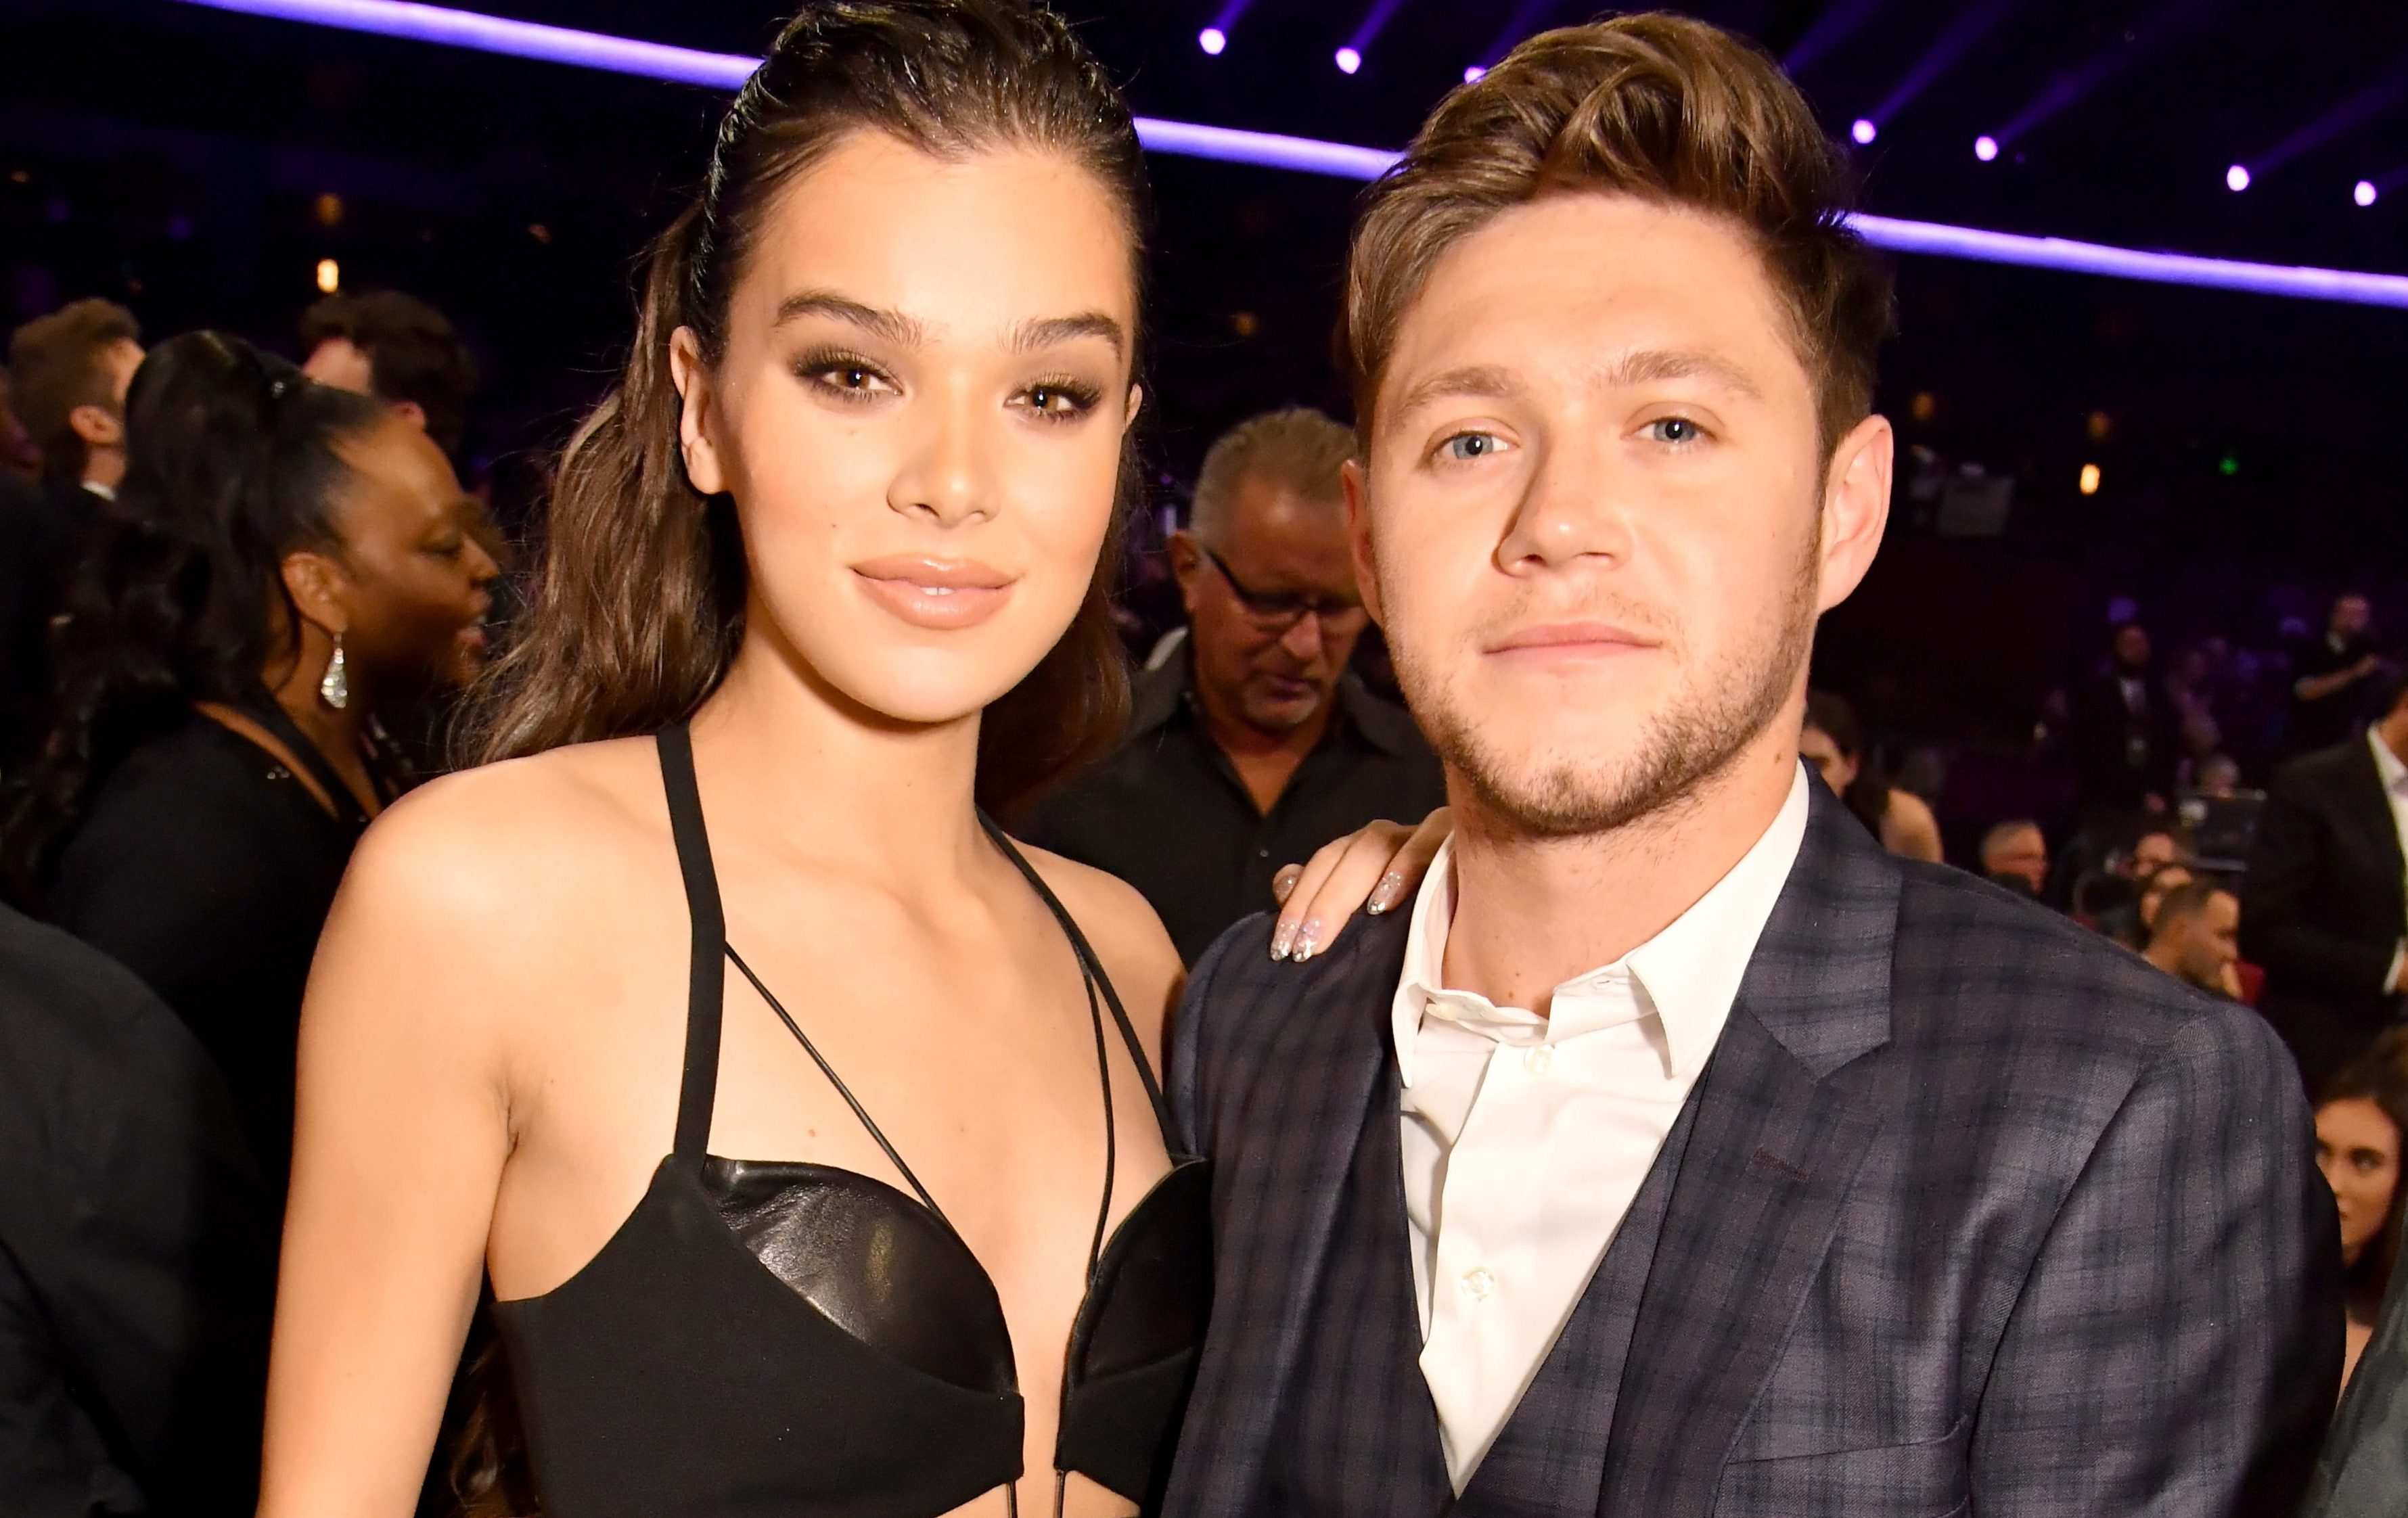 Hailee Steinfeld lifts the lid on falling in love amid Niall Horan rumours and it's giving us all the feels